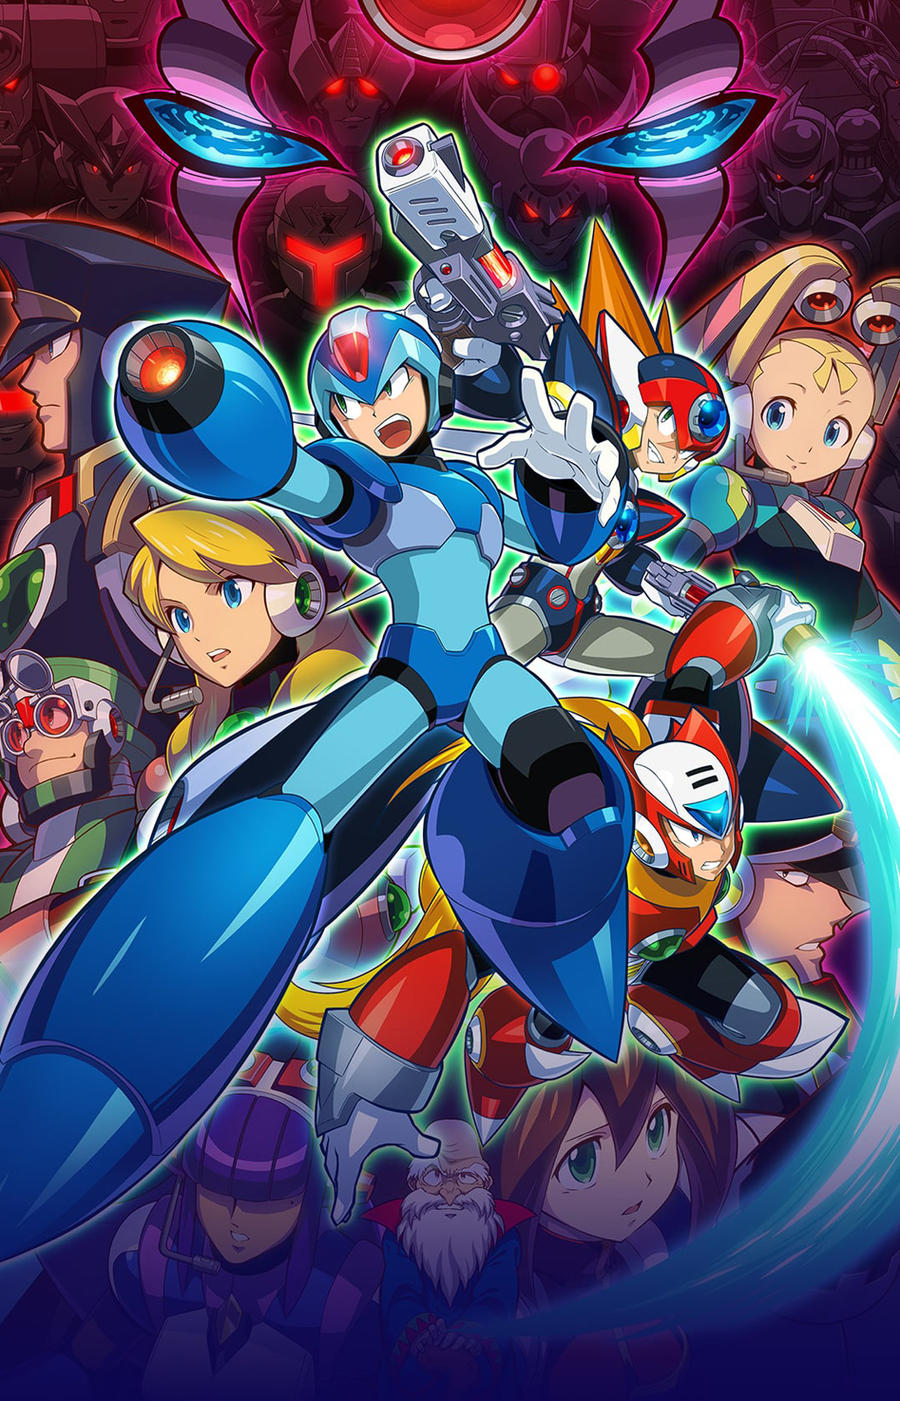 Megaman X Legacy Wallpaper 3 By Falconburst322 On Deviantart